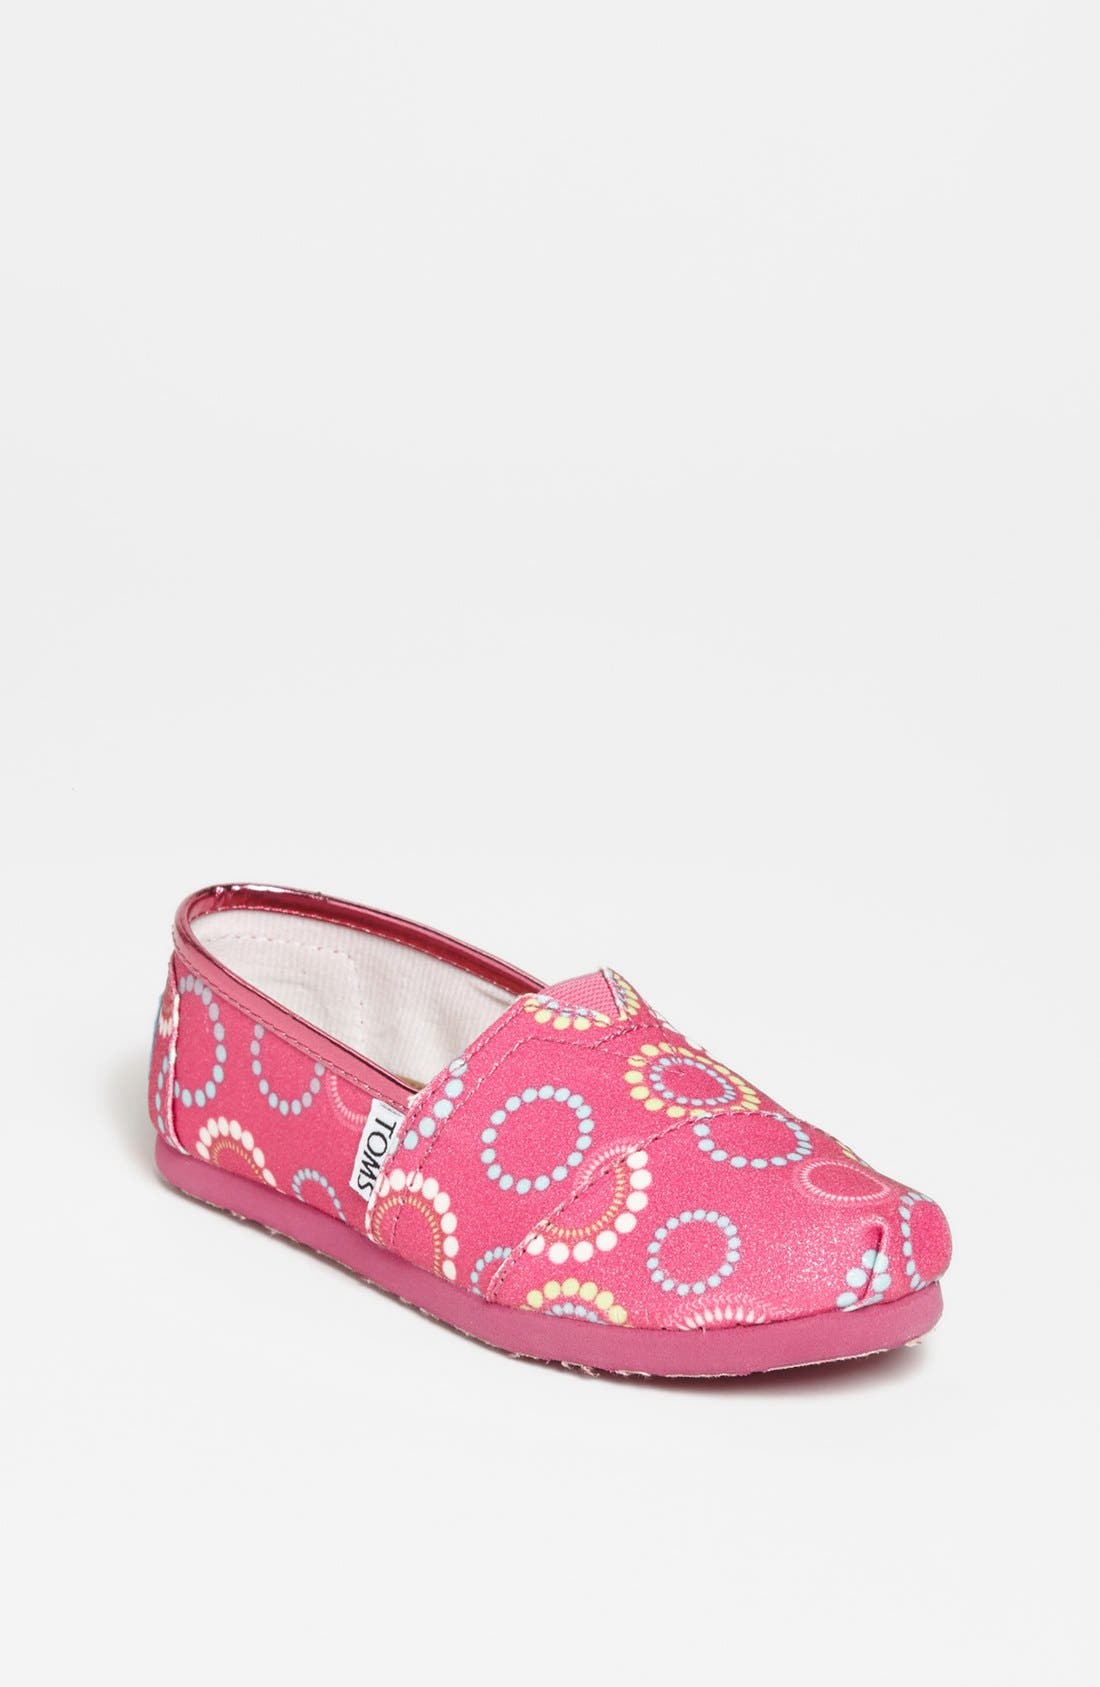 Main Image - TOMS 'Classic Youth - Circles Glitter' Slip-On (Toddler, Little Kid & Big Kid)